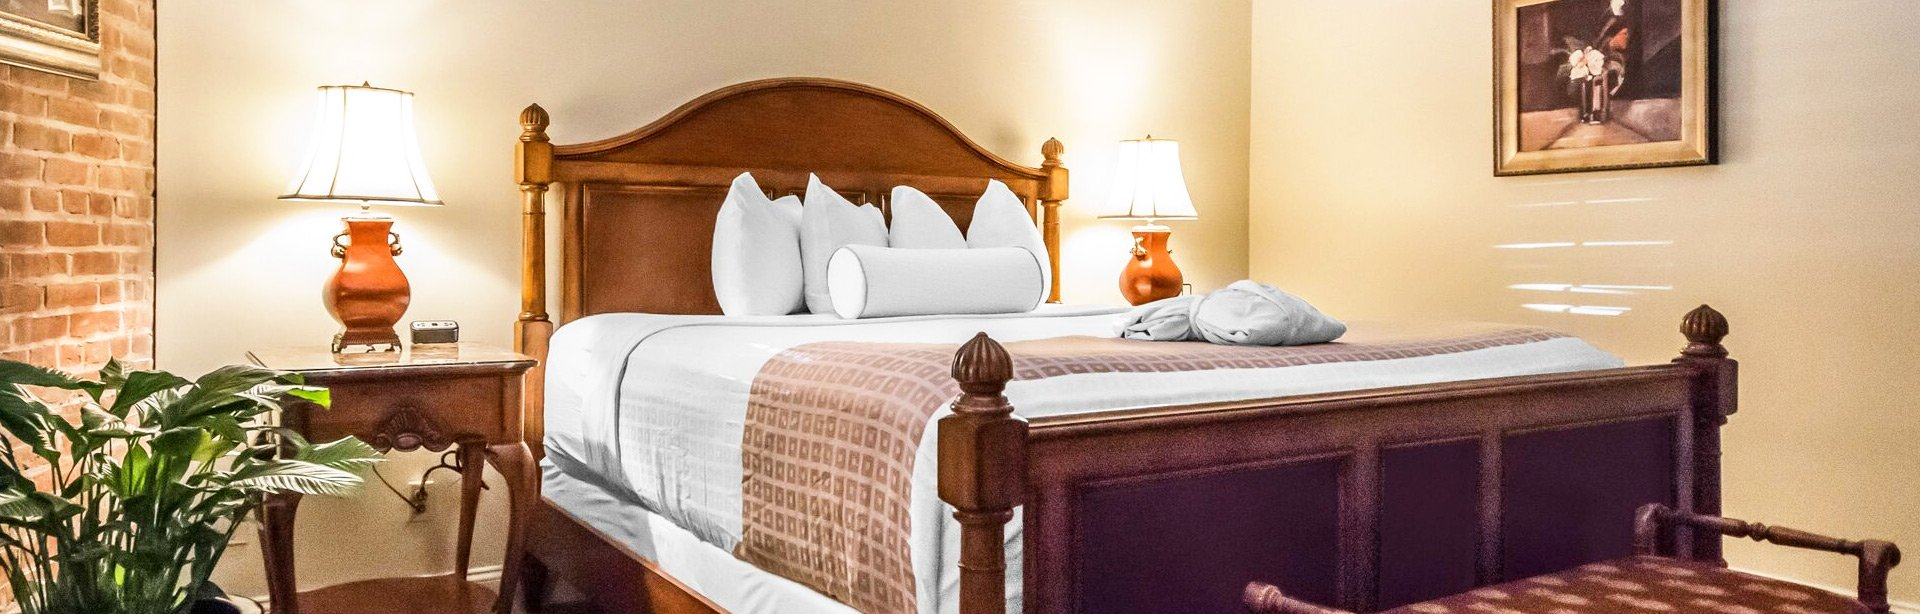 King Bed Cobblestone View Room at Inn at Henderson's Wharf Baltimore, Maryland